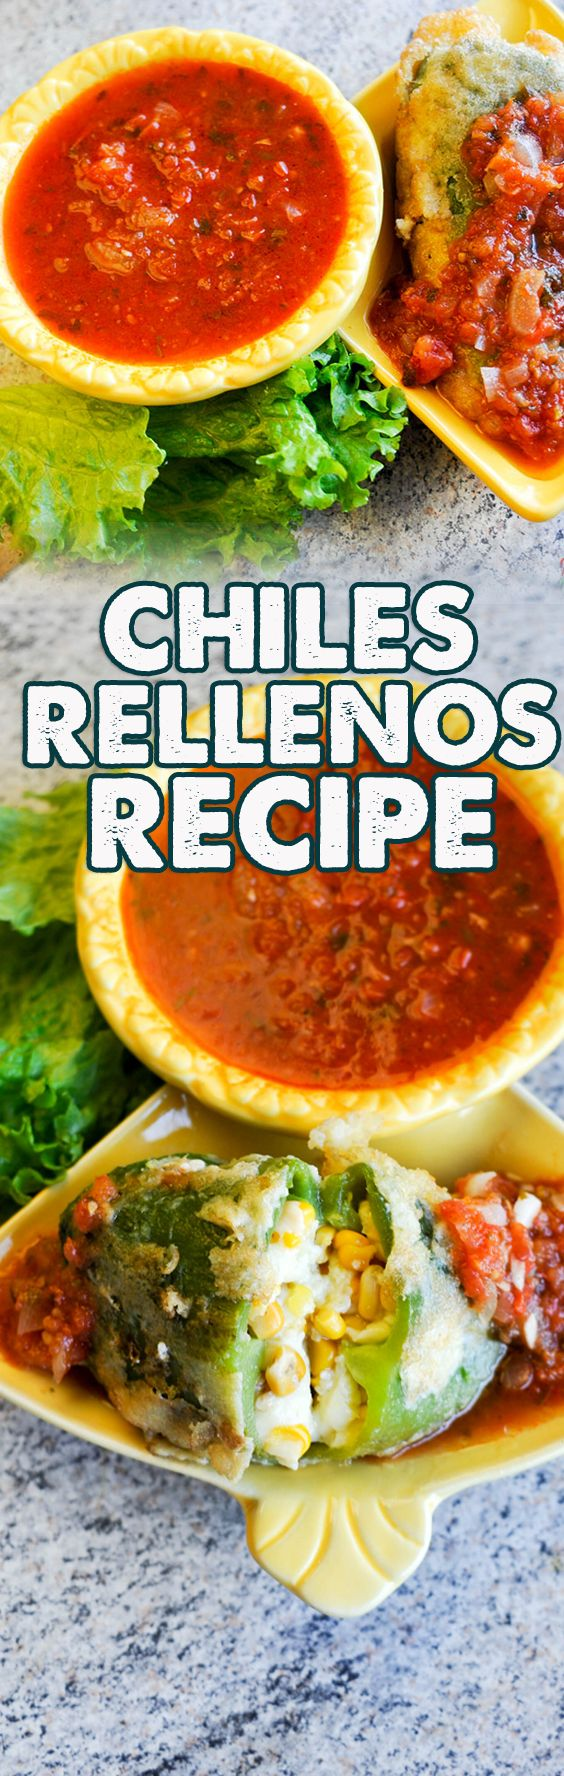 One perfect dish for a perfect afternoon is to make a Chiles Rellenos. The Chiles Rellenos Recipe is a classic Mexican dish traditionally consisting of fresh, mild Poblano peppers stuffed with a savory filling.  A dish that is originated from Pueblo, Mexico